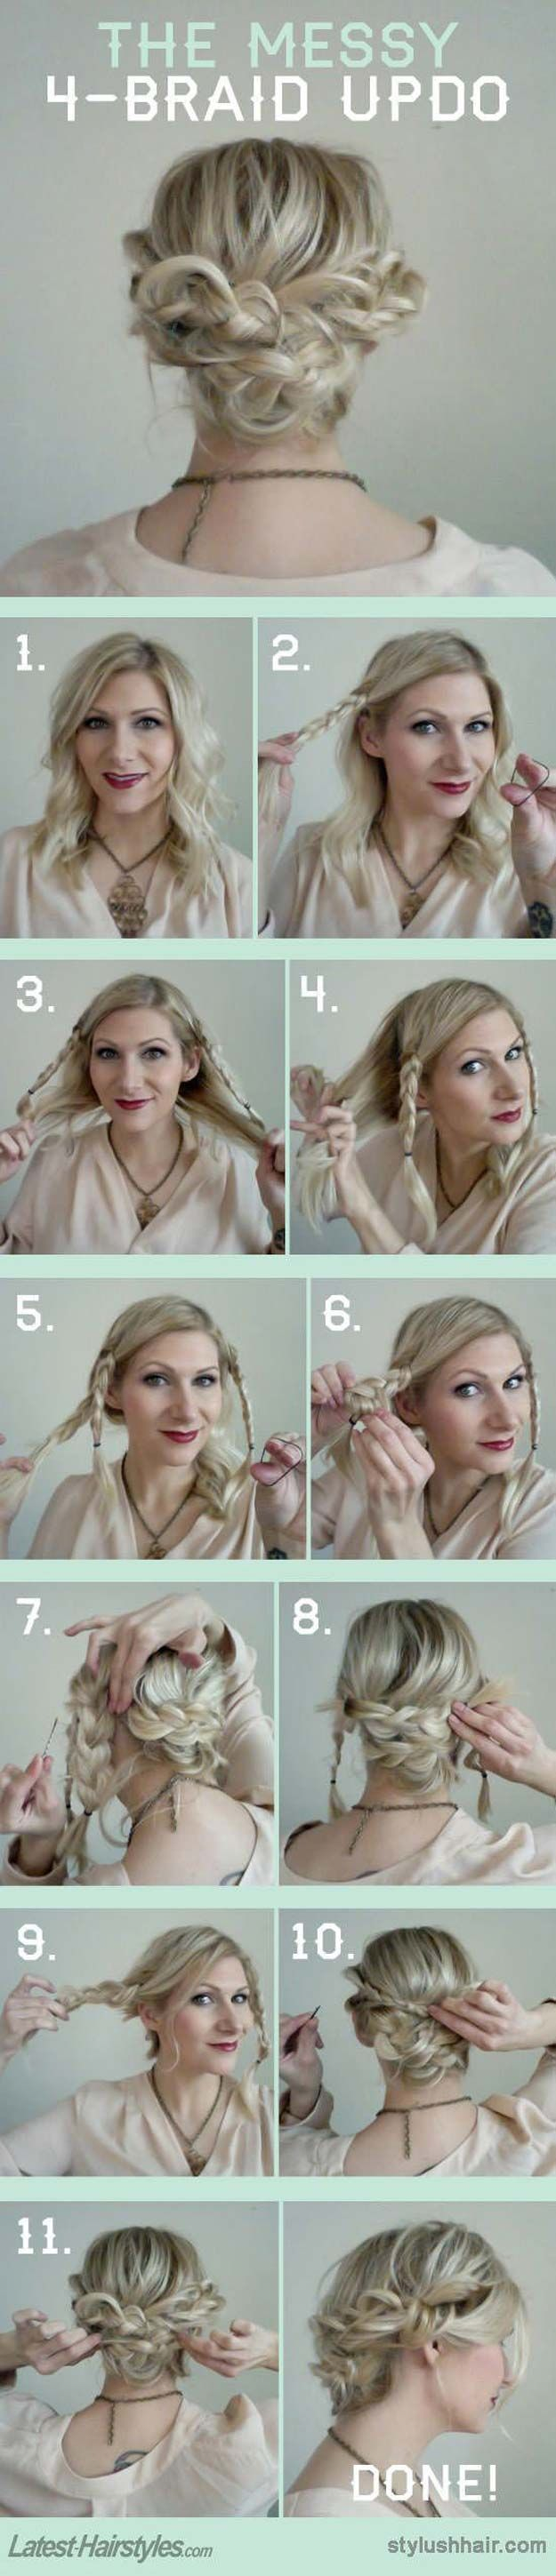 The 48 Best Medium-Length Hairstyles to Steal For Yourself - The Messy 4 Braid U...